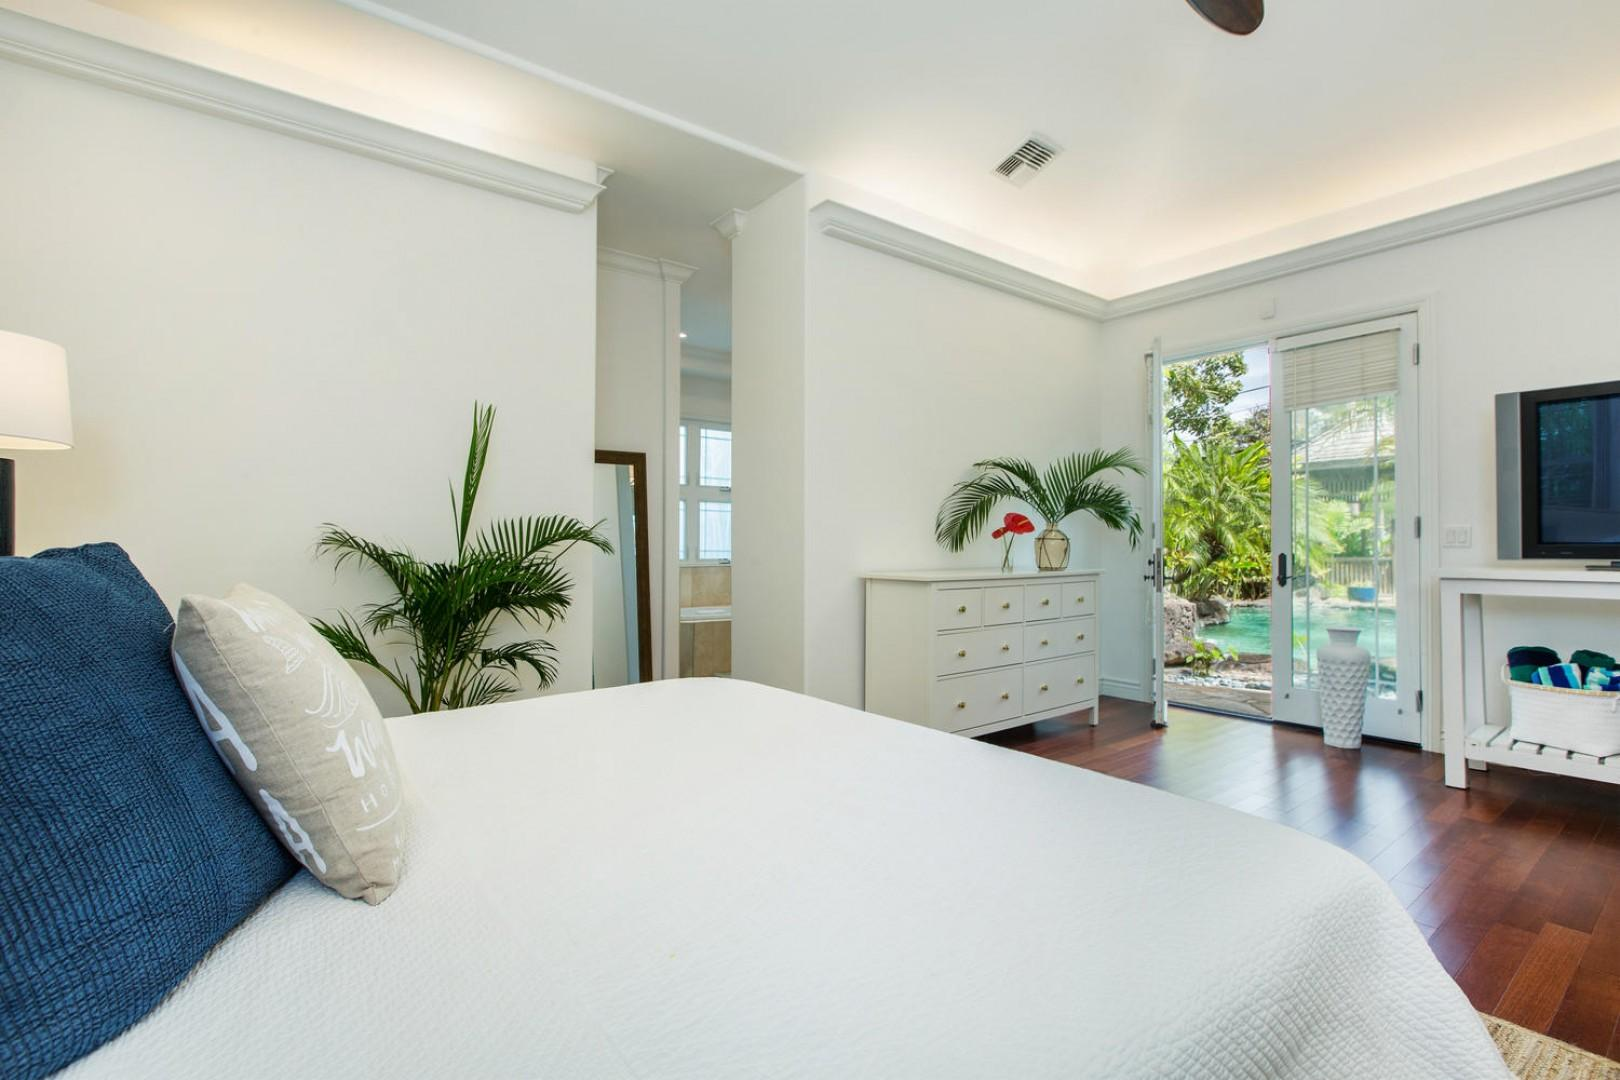 Master bedroom, with view of the pool courtyard.